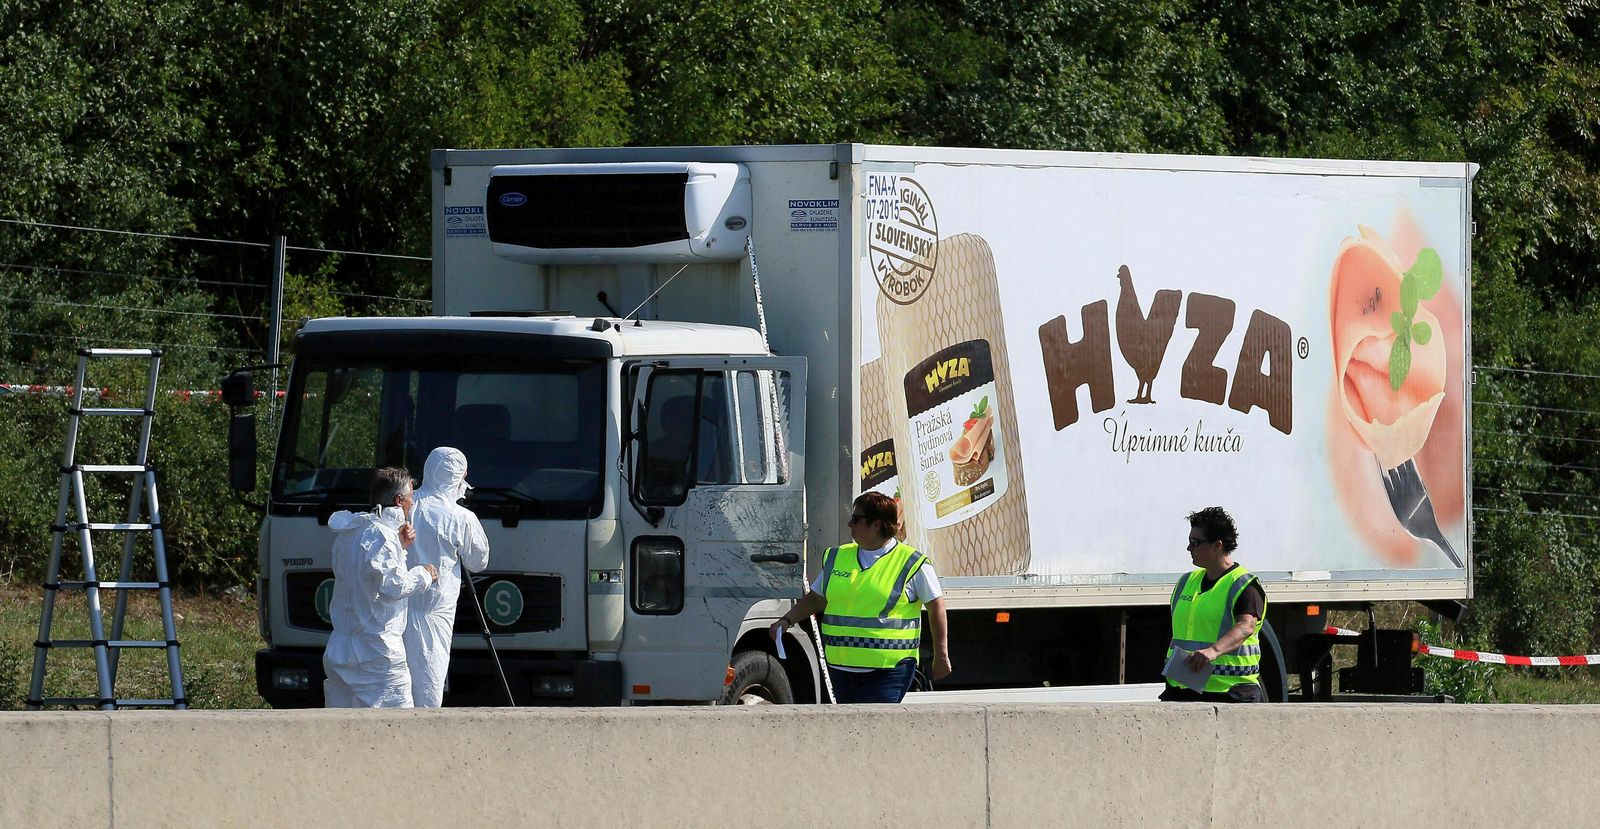 FILE - In this Thursday, Aug. 27, 2015 file photo, investigators stand near an abandoned truck on the shoulder of Highway A4 near Parndorf, Austria, south of Vienna.{ } (AP Photo/Ronald Zak, file)